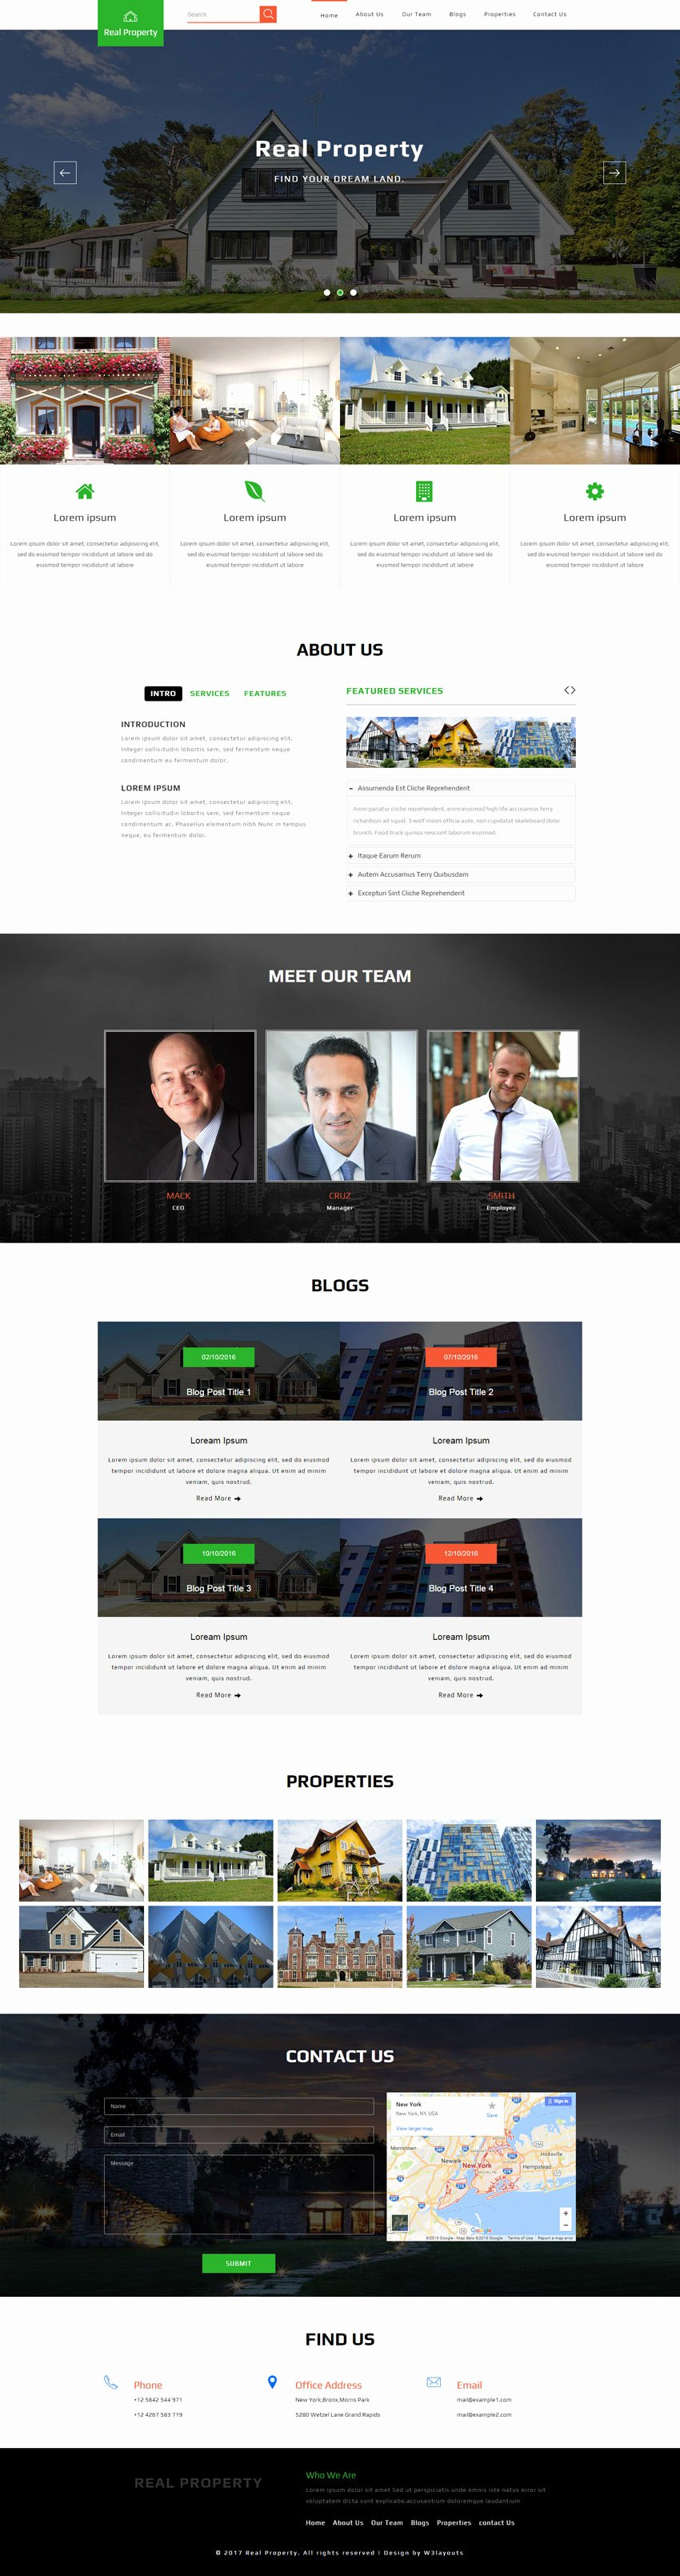 Real Property A Real Estate Category Bootstrap Responsive